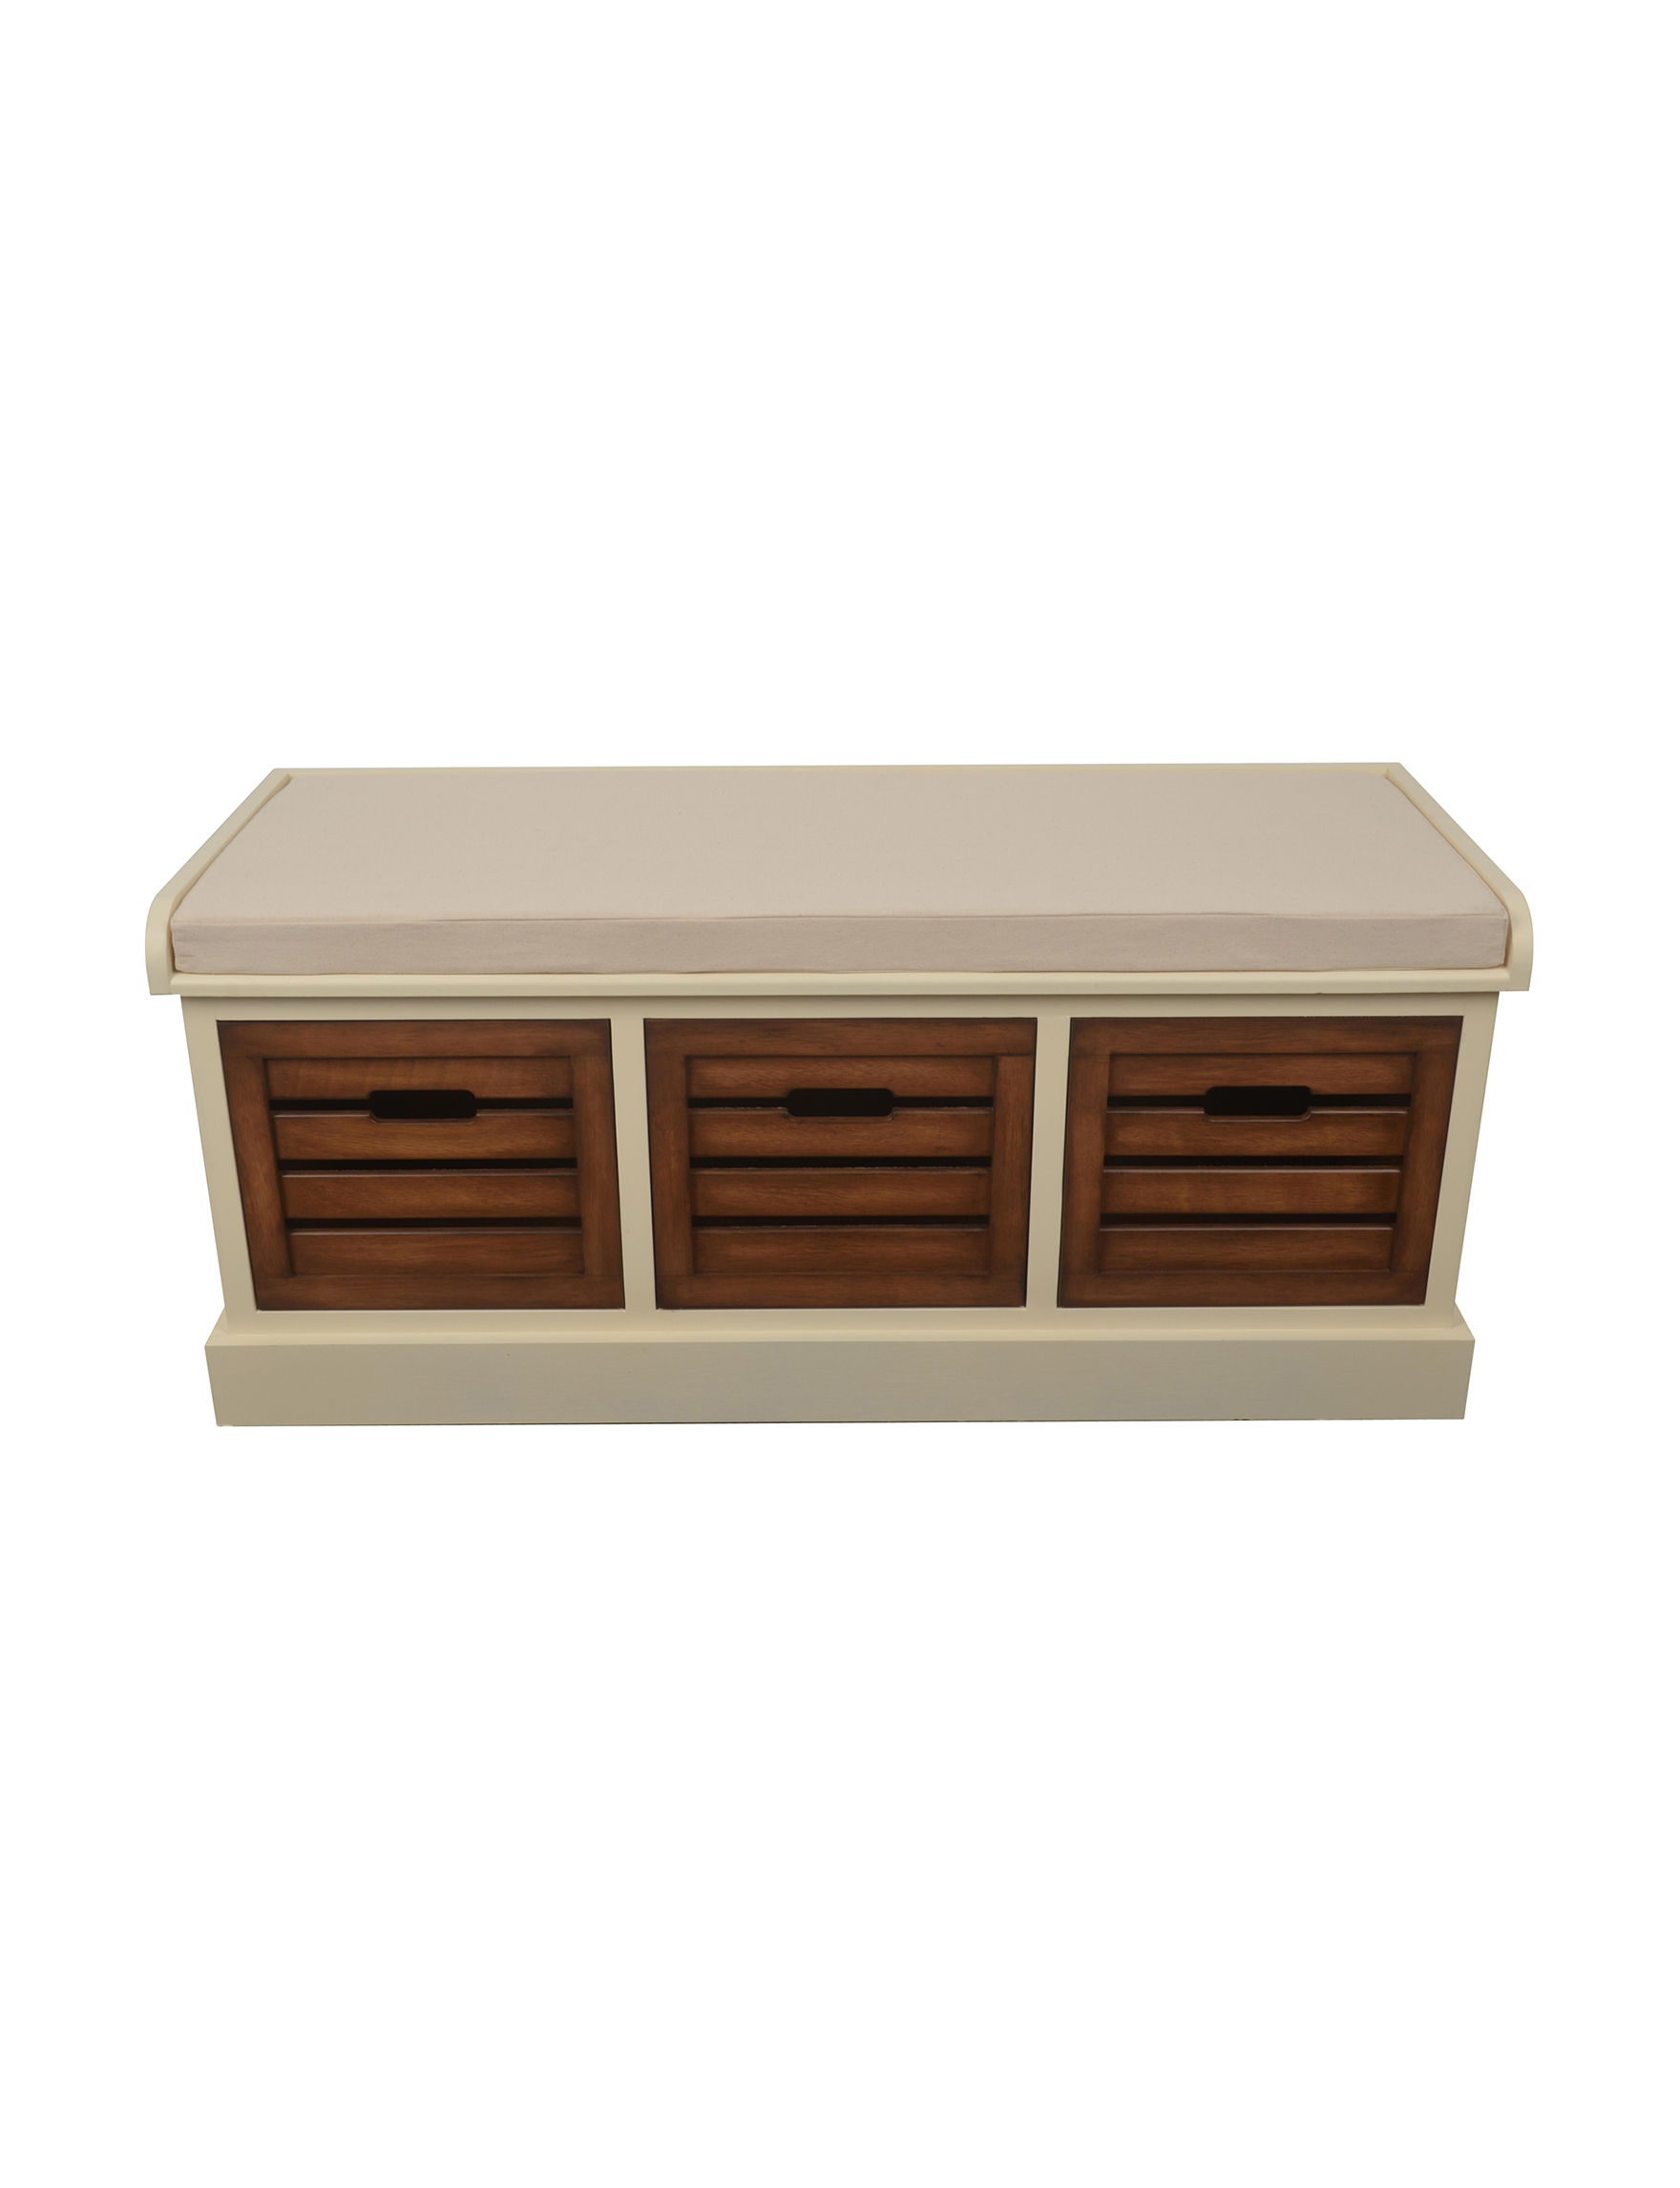 Decor Therapy Beige / Brown Ottomans & Benches Bedroom Furniture Entryway Furniture Home Office Furniture Living Room Furniture